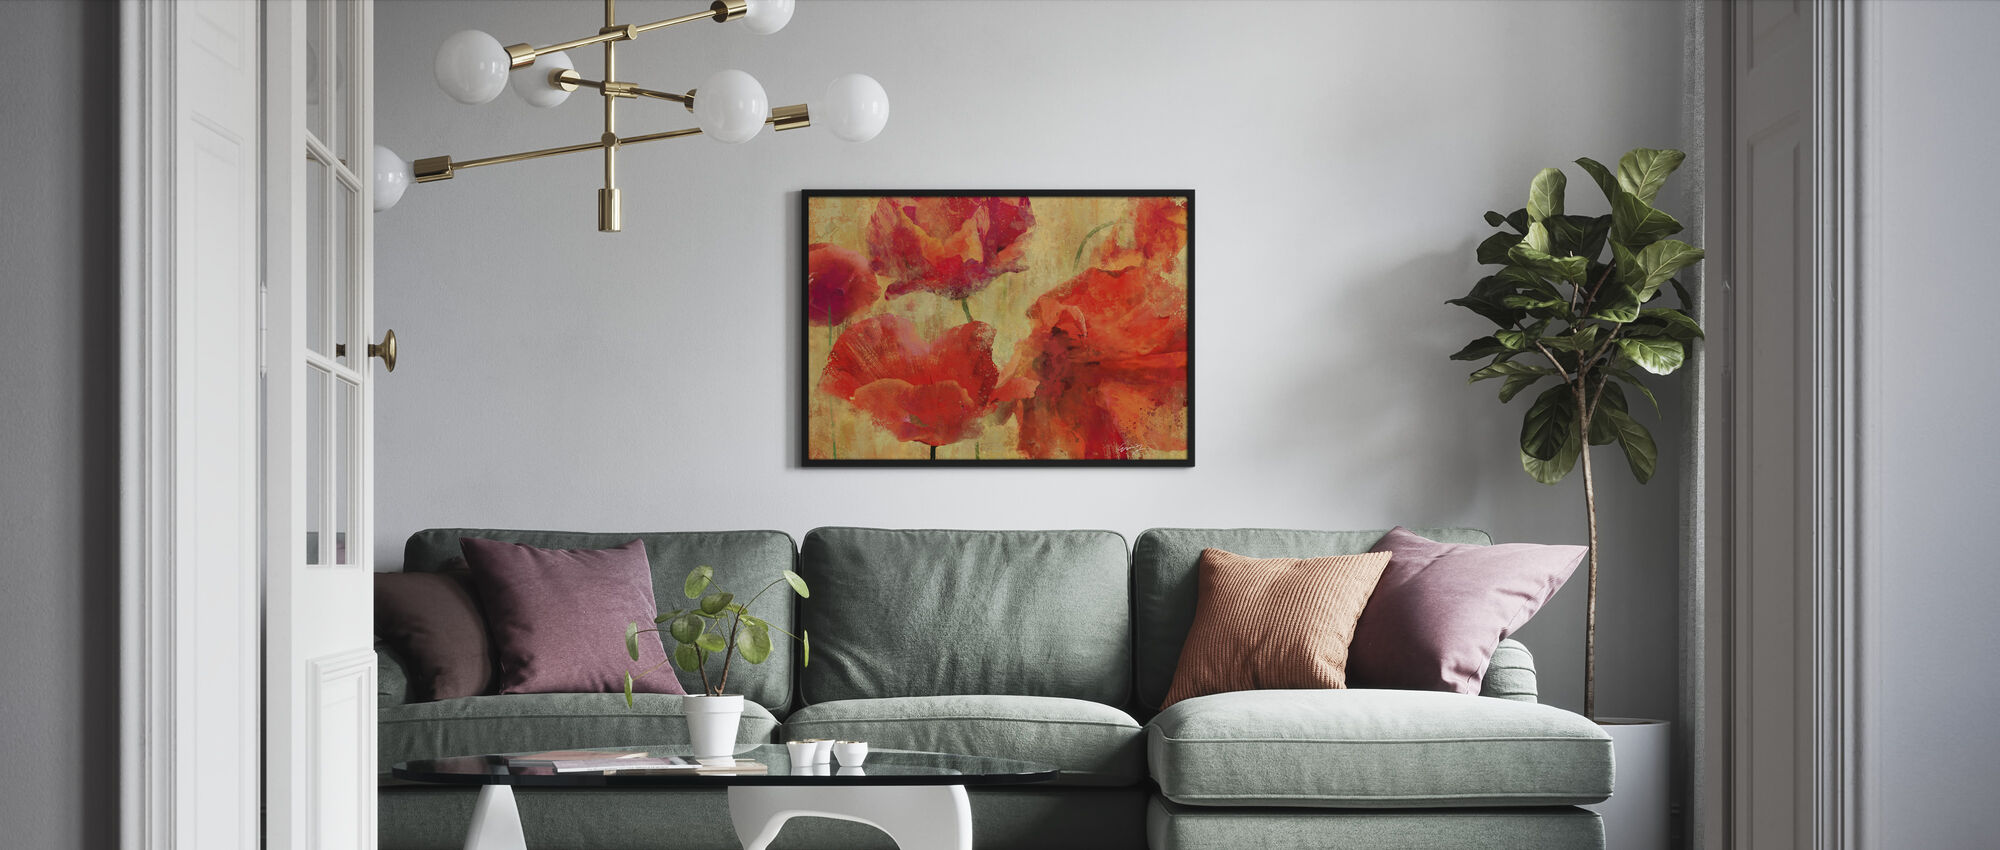 Expressive Flowers - Framed print - Living Room